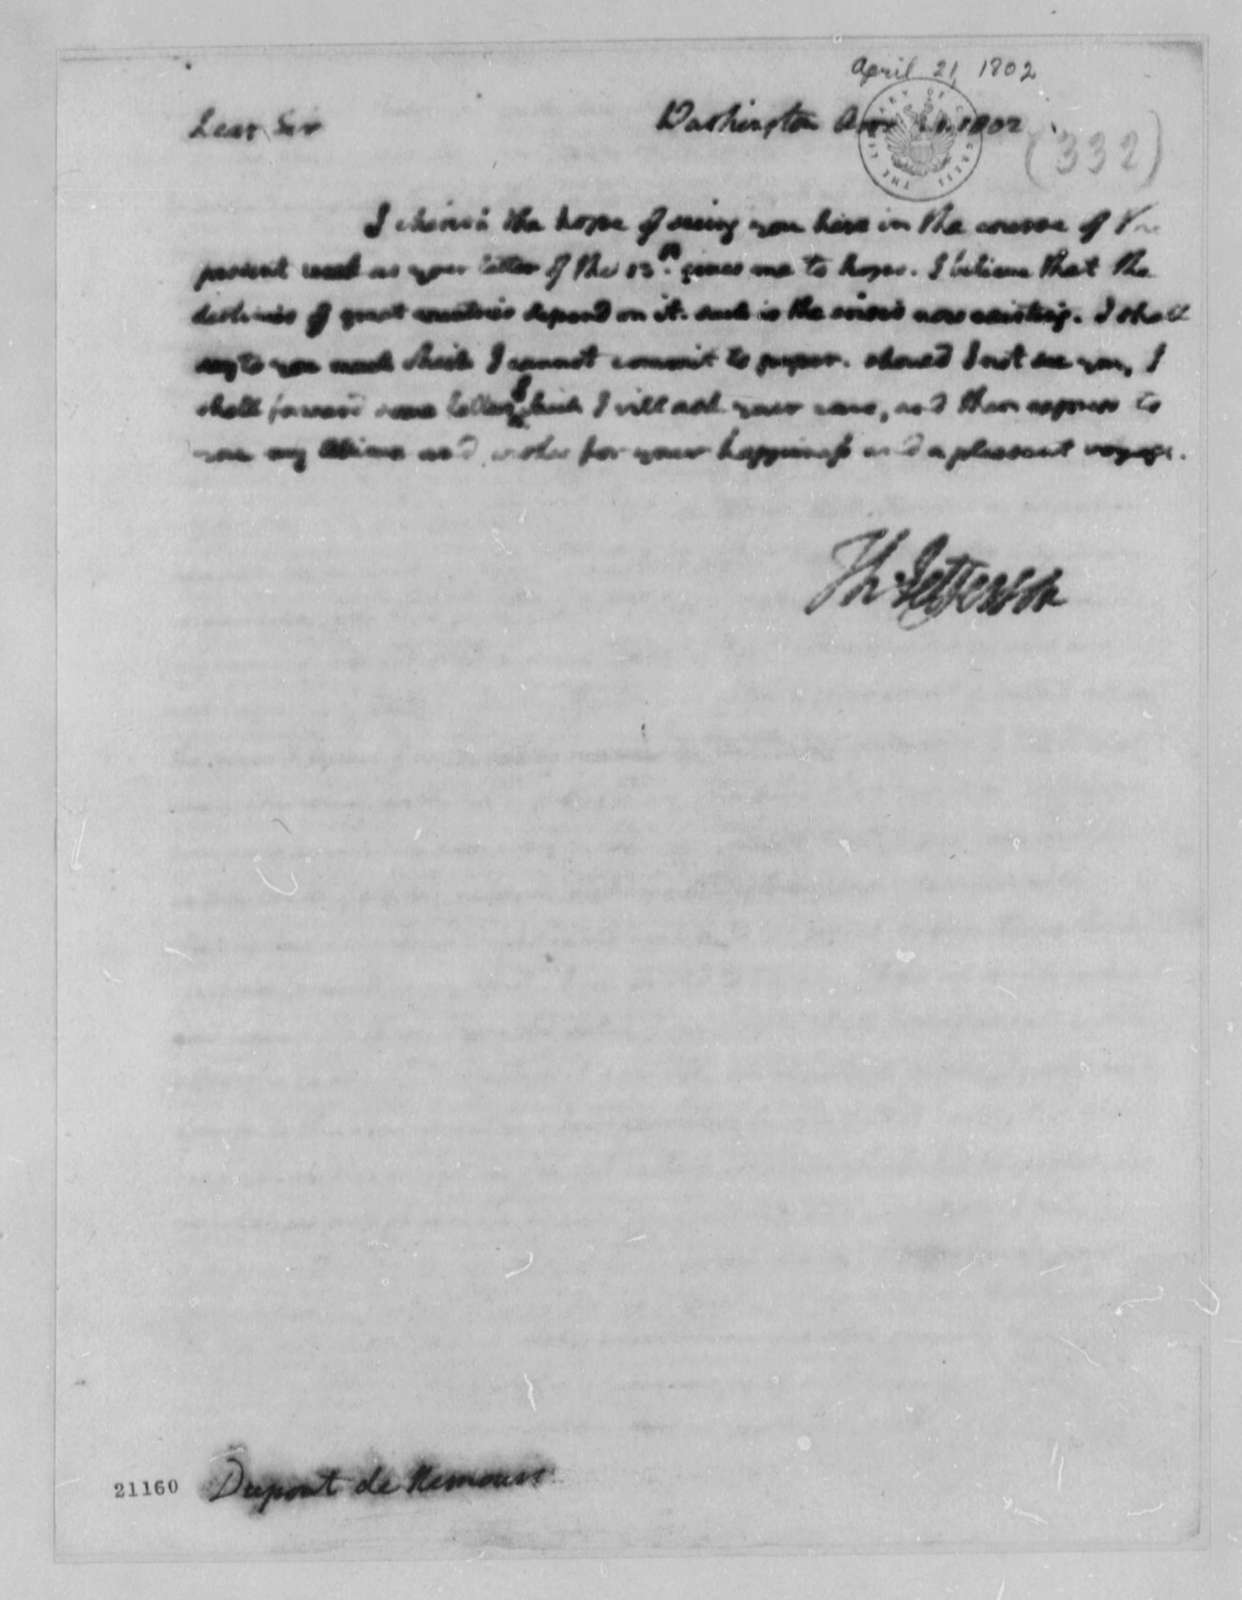 Thomas Jefferson to Pierre S. Dupont de Nemours, April 21, 1802